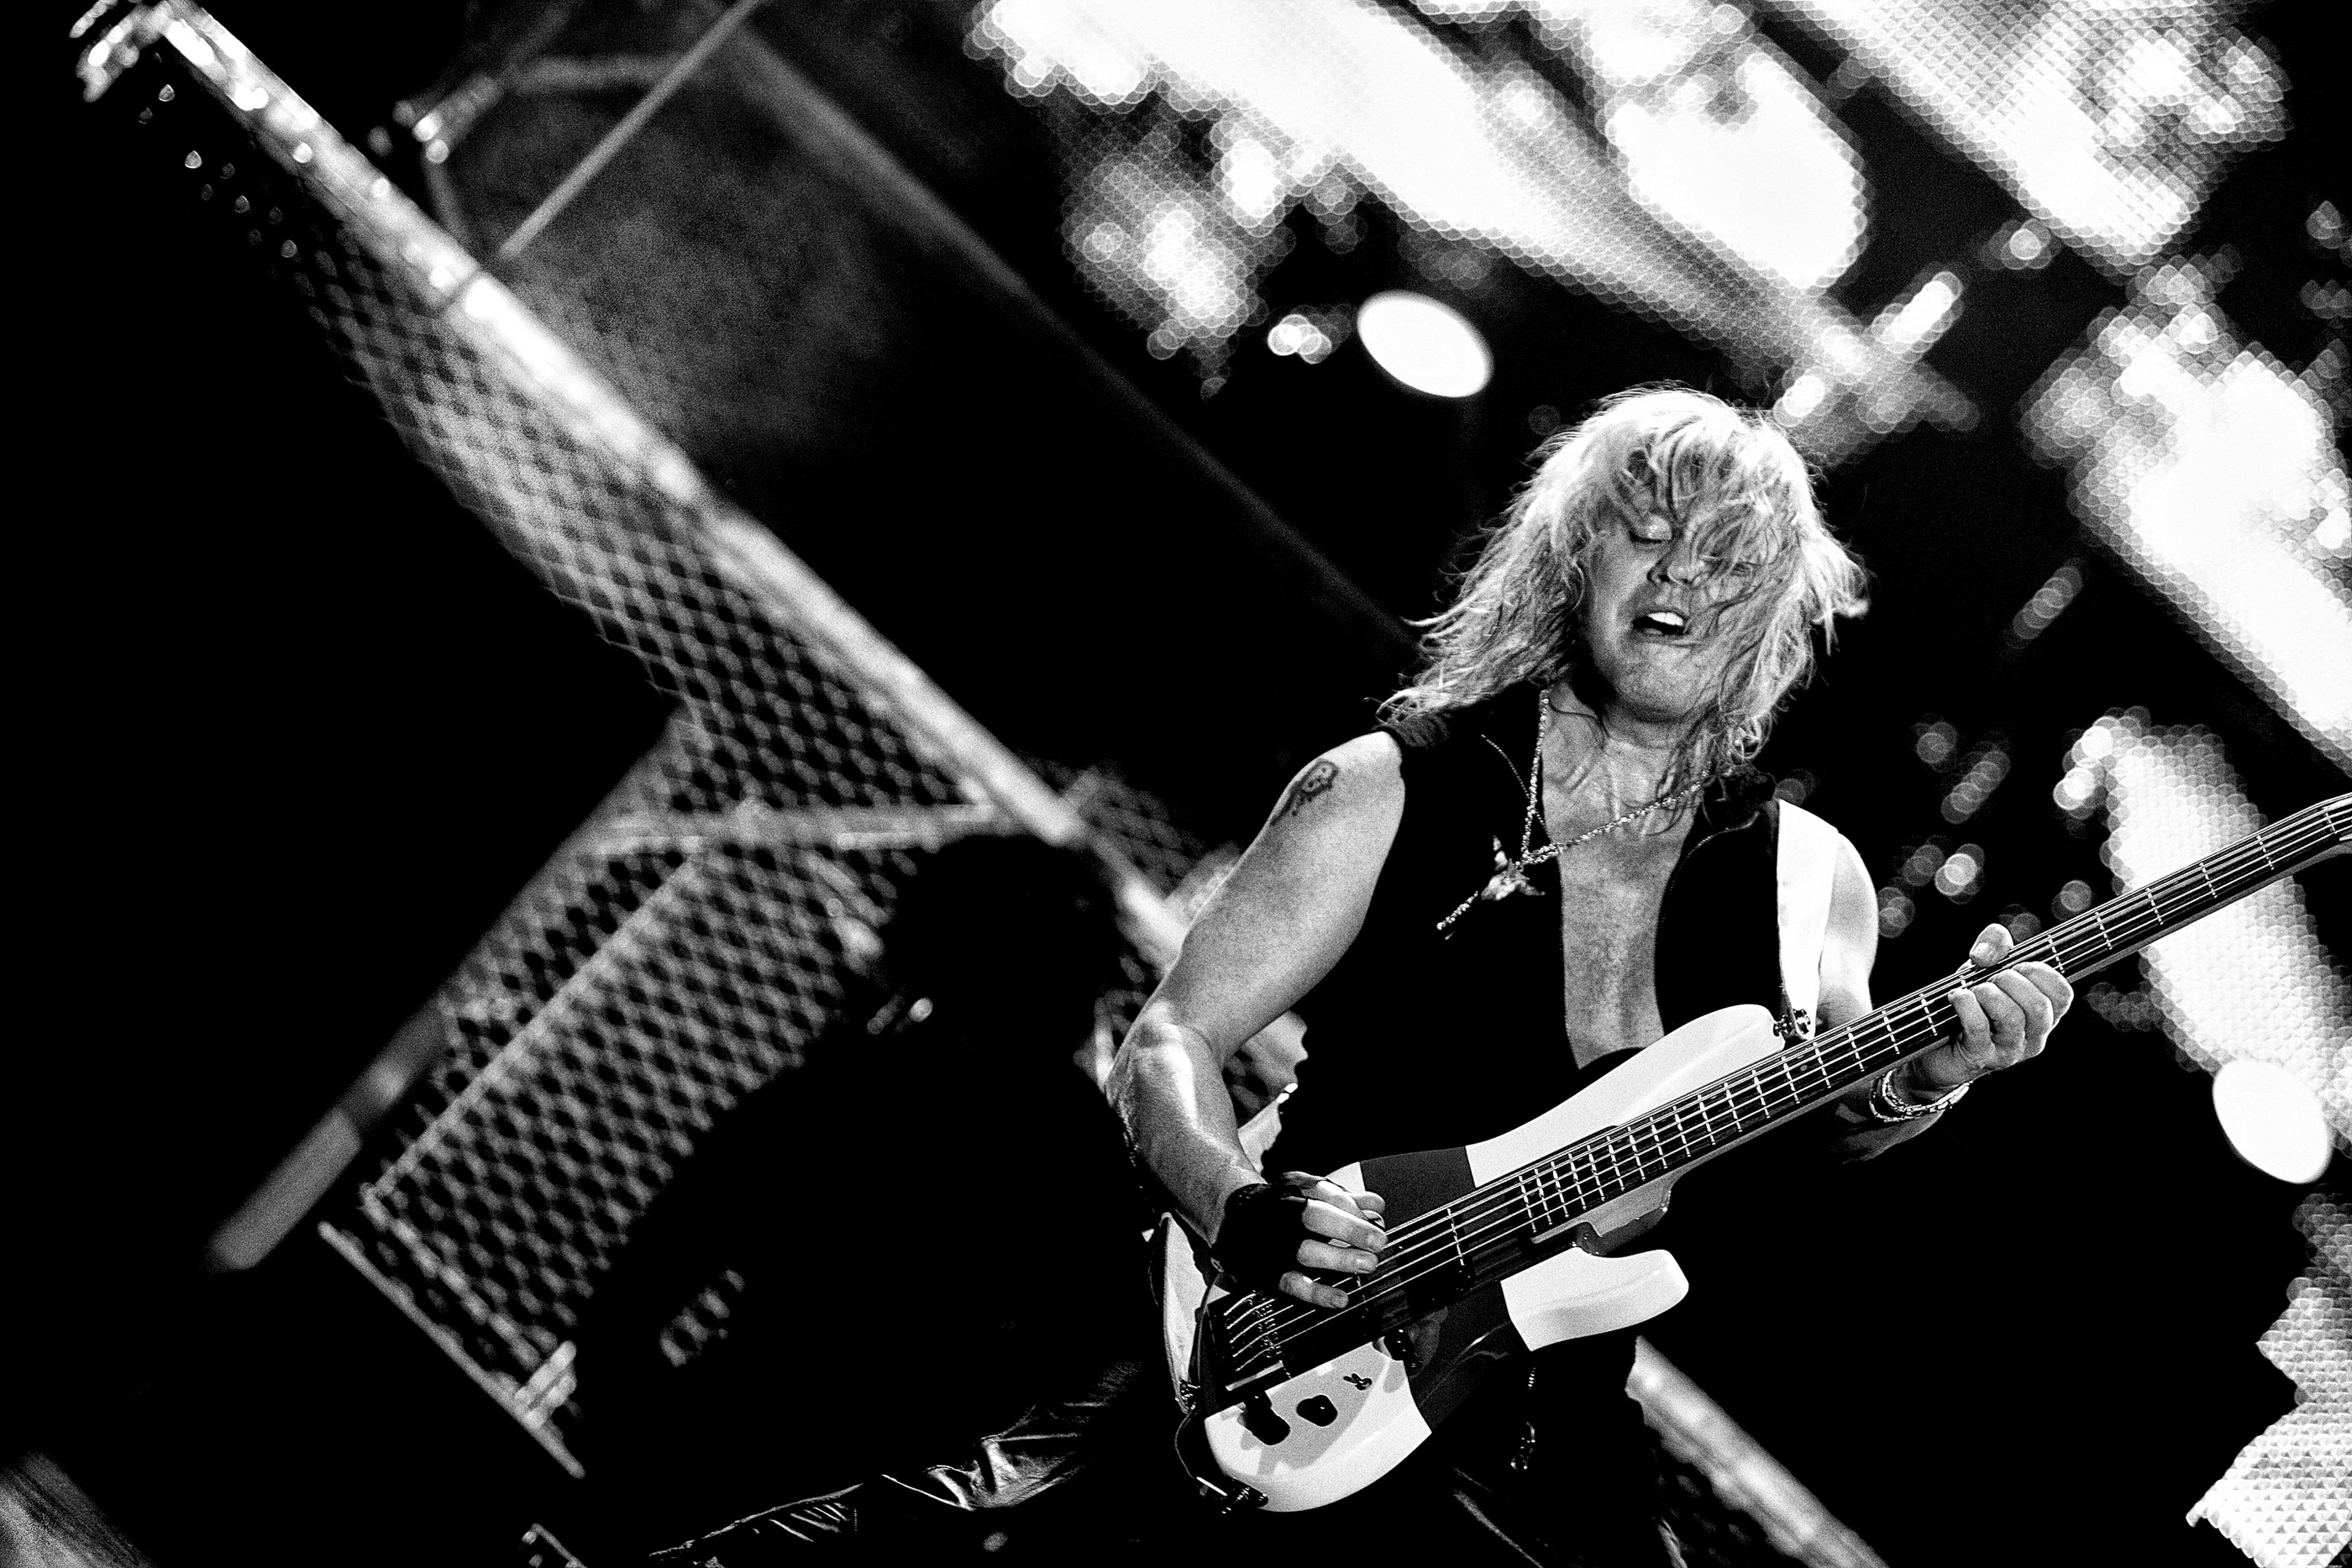 Rick Savage Def Leppard Manchester onstage 2008 by Ash Newell